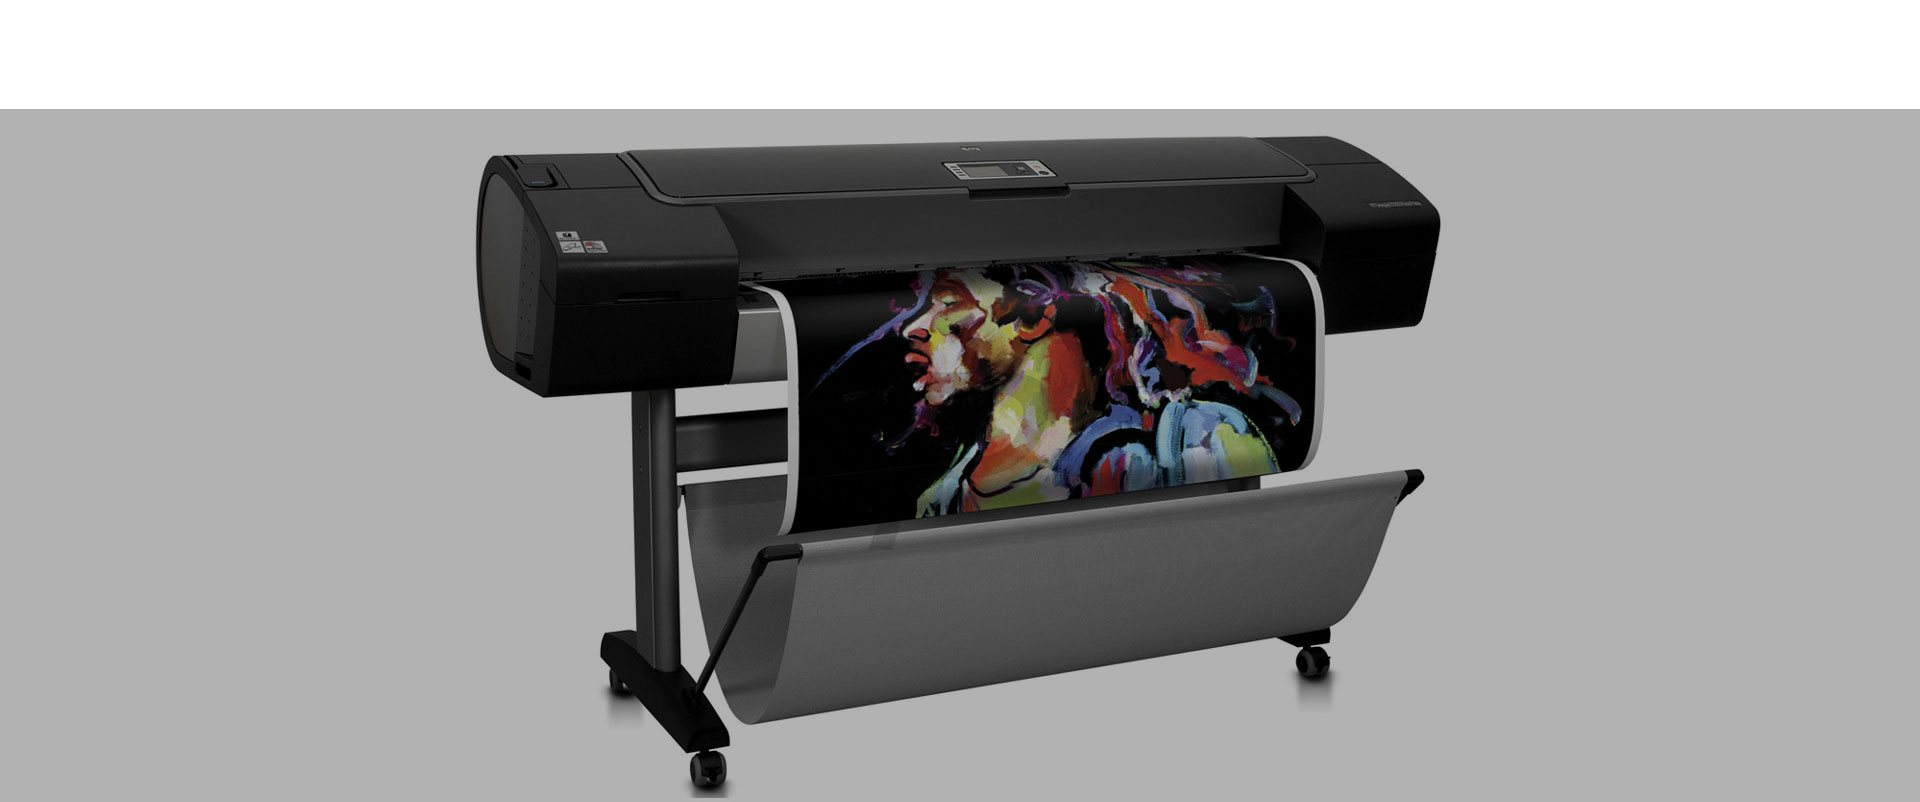 HP Designjet plotter repair from only £100.00 plus vat